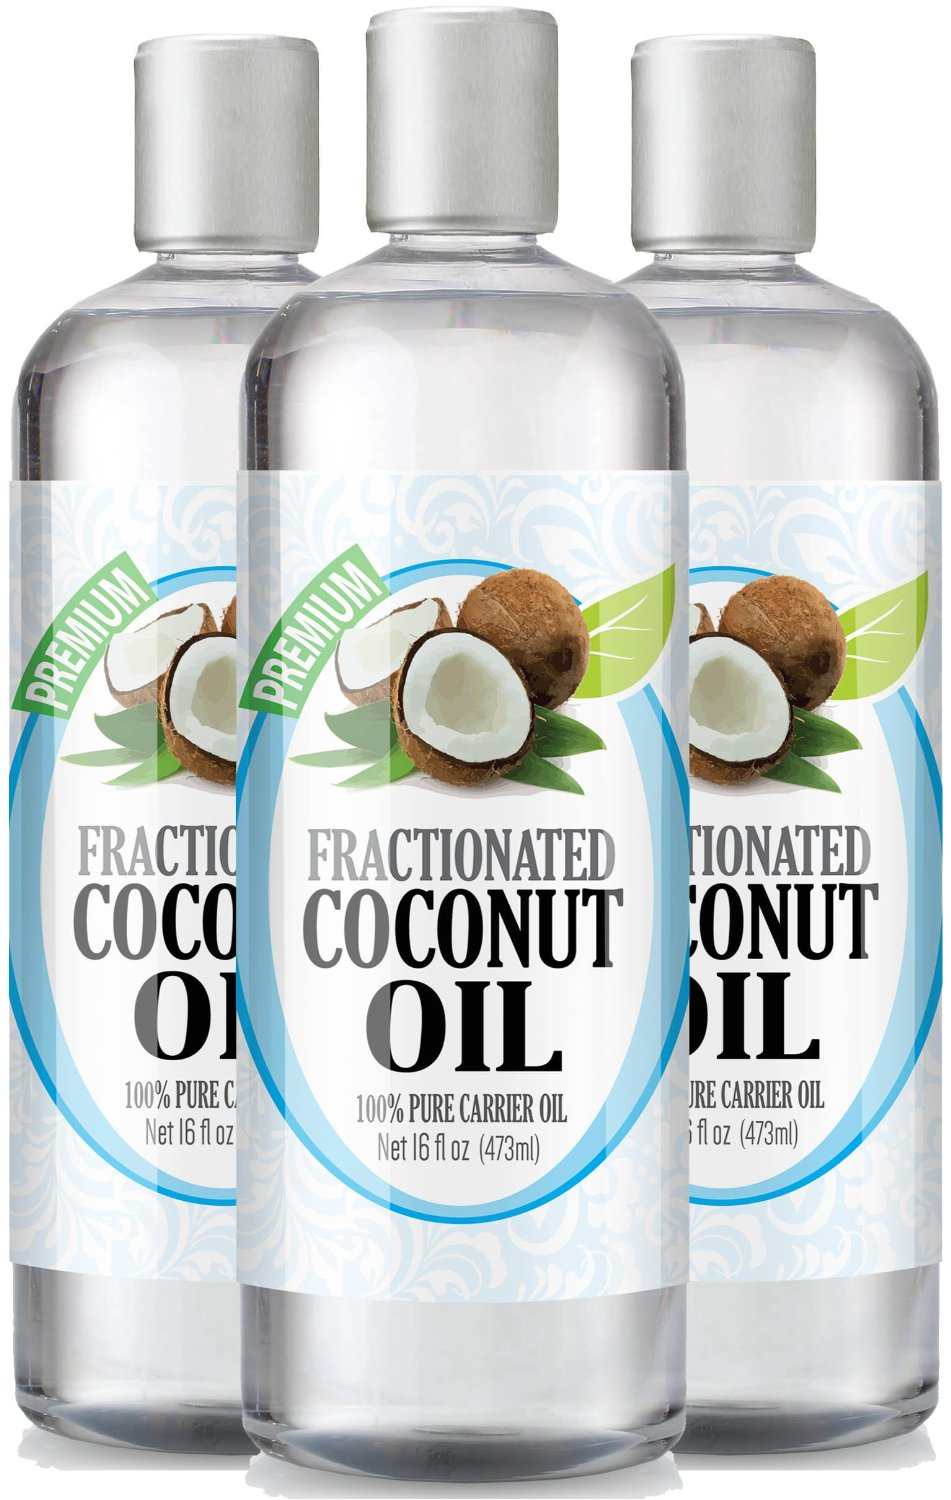 Fractionated Coconut Oil 16oz - 100% Pure, Premium Therapeutic Grade - Best Base or Carrier Oil for Aromatherapy, Essential Oil, and Massage - Numerous Hair & Skin Benefits and Perfect for use in Creams, Shampoos, And Other Home Recipes - Large 16 ounce size - Pack of 3